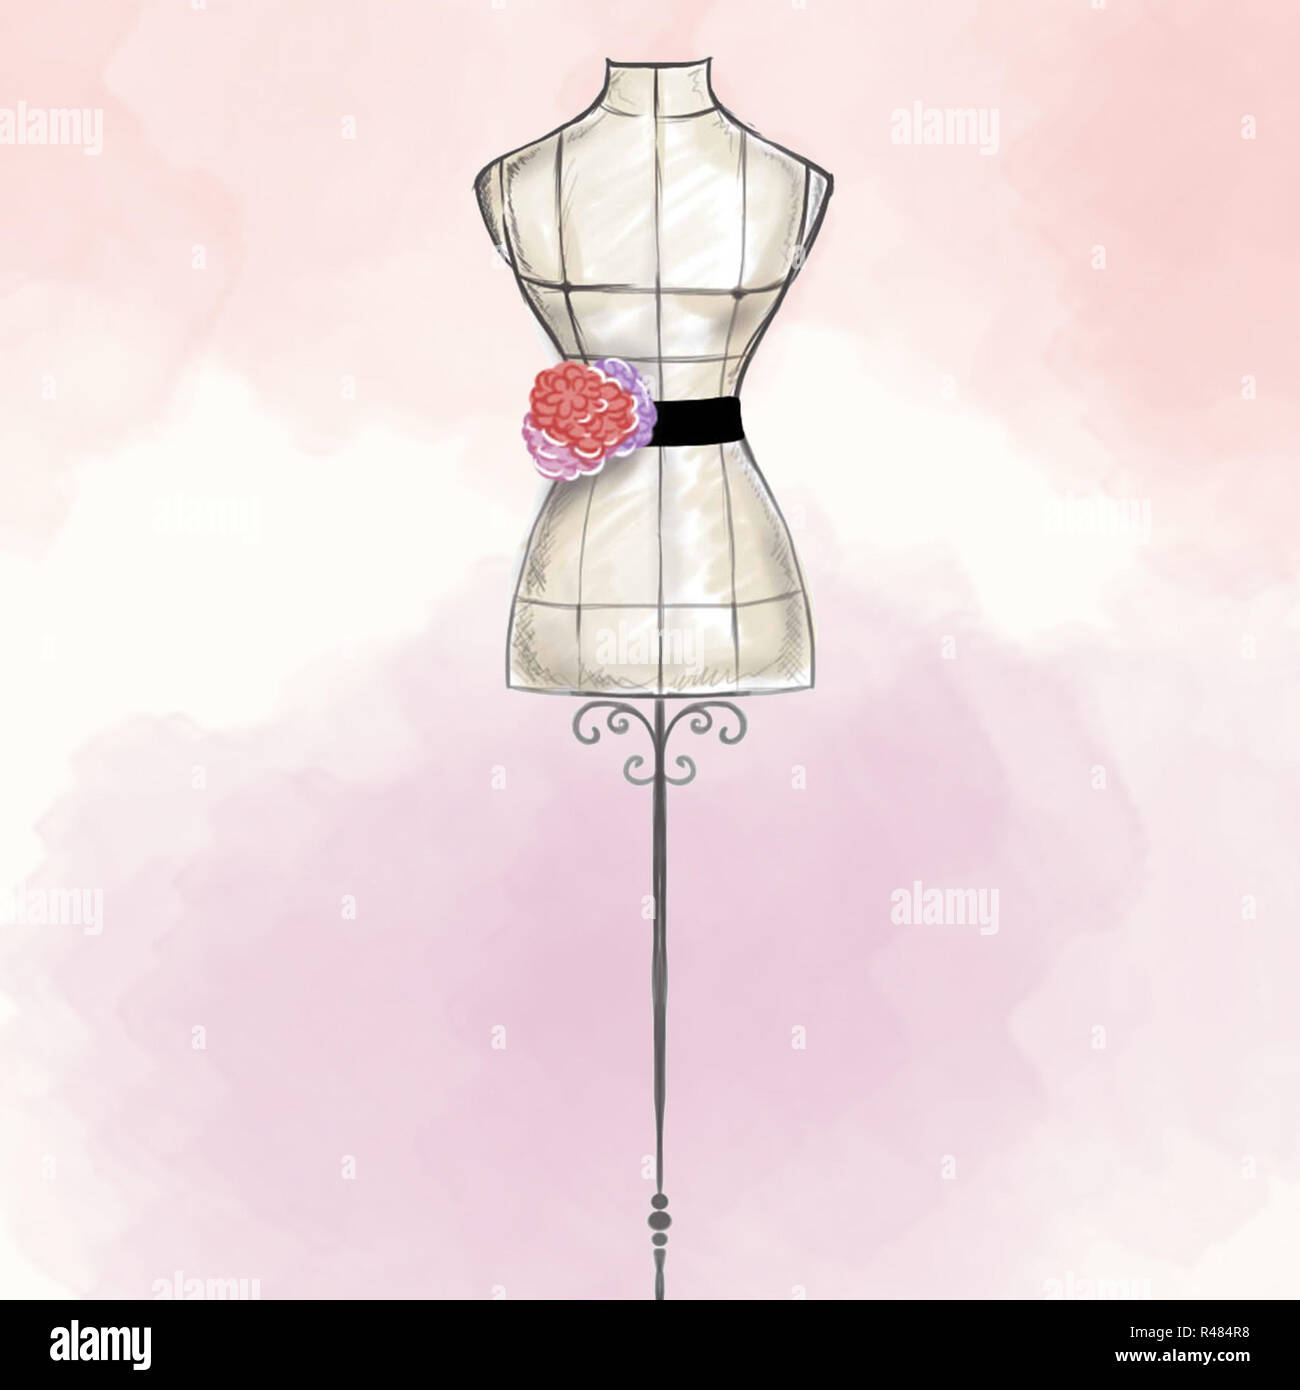 Dress Form High Resolution Stock Photography And Images Alamy